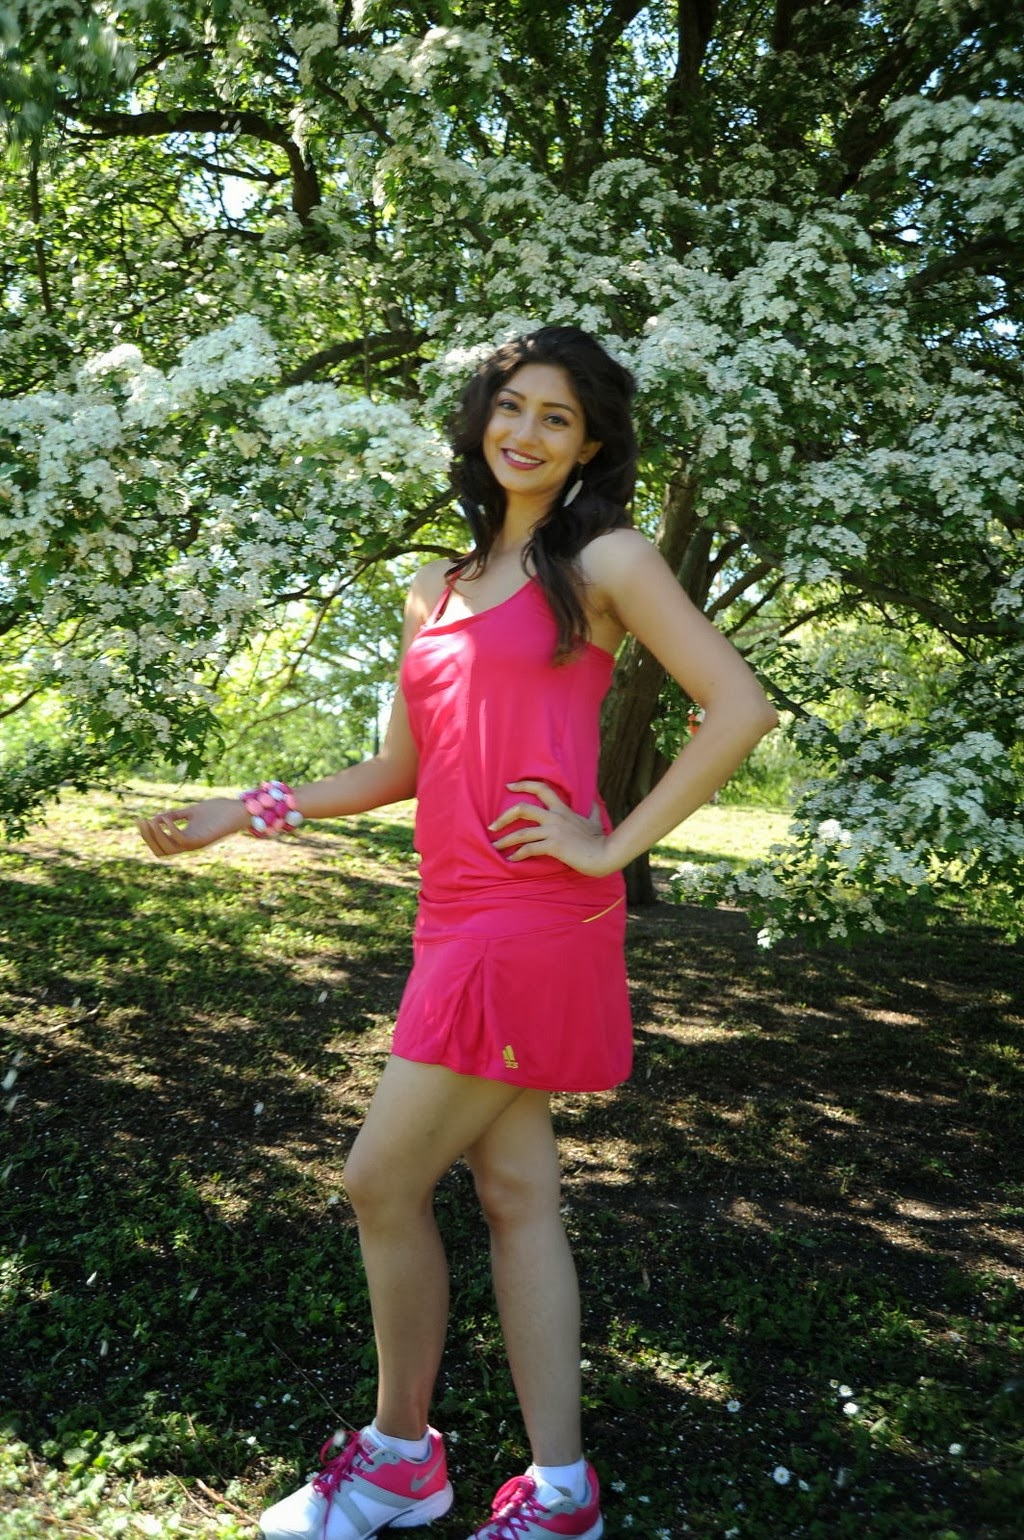 Tanvi Vyas Showing Her Sexy Legs in A Short Pink Mini Dress in Garden_VP (4)